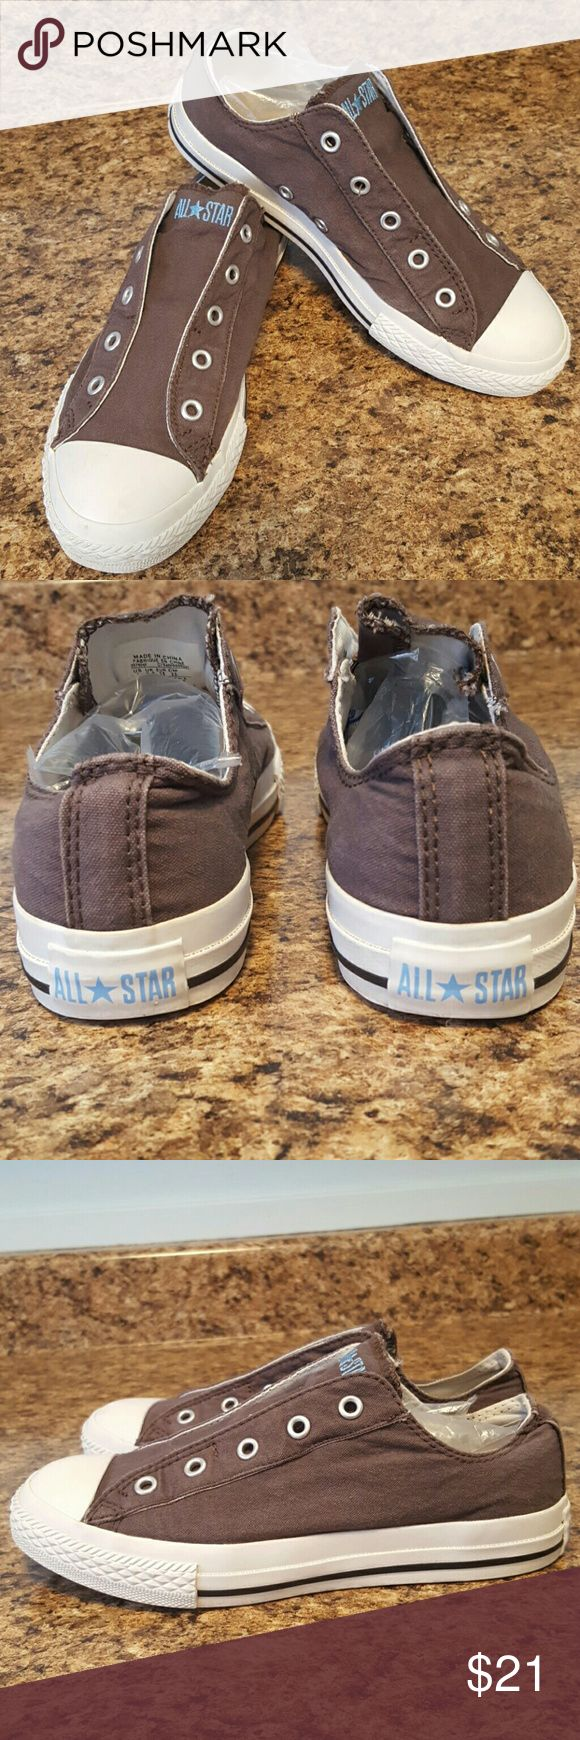 CONVERSE Slip Ons Taupey-grey with light blue accents logo. Classic lows with elastic for easy slip on/off. Pre loved in nice condition, nothing major going on, just normal wear. Cute! I ship fast! Converse Shoes Sneakers